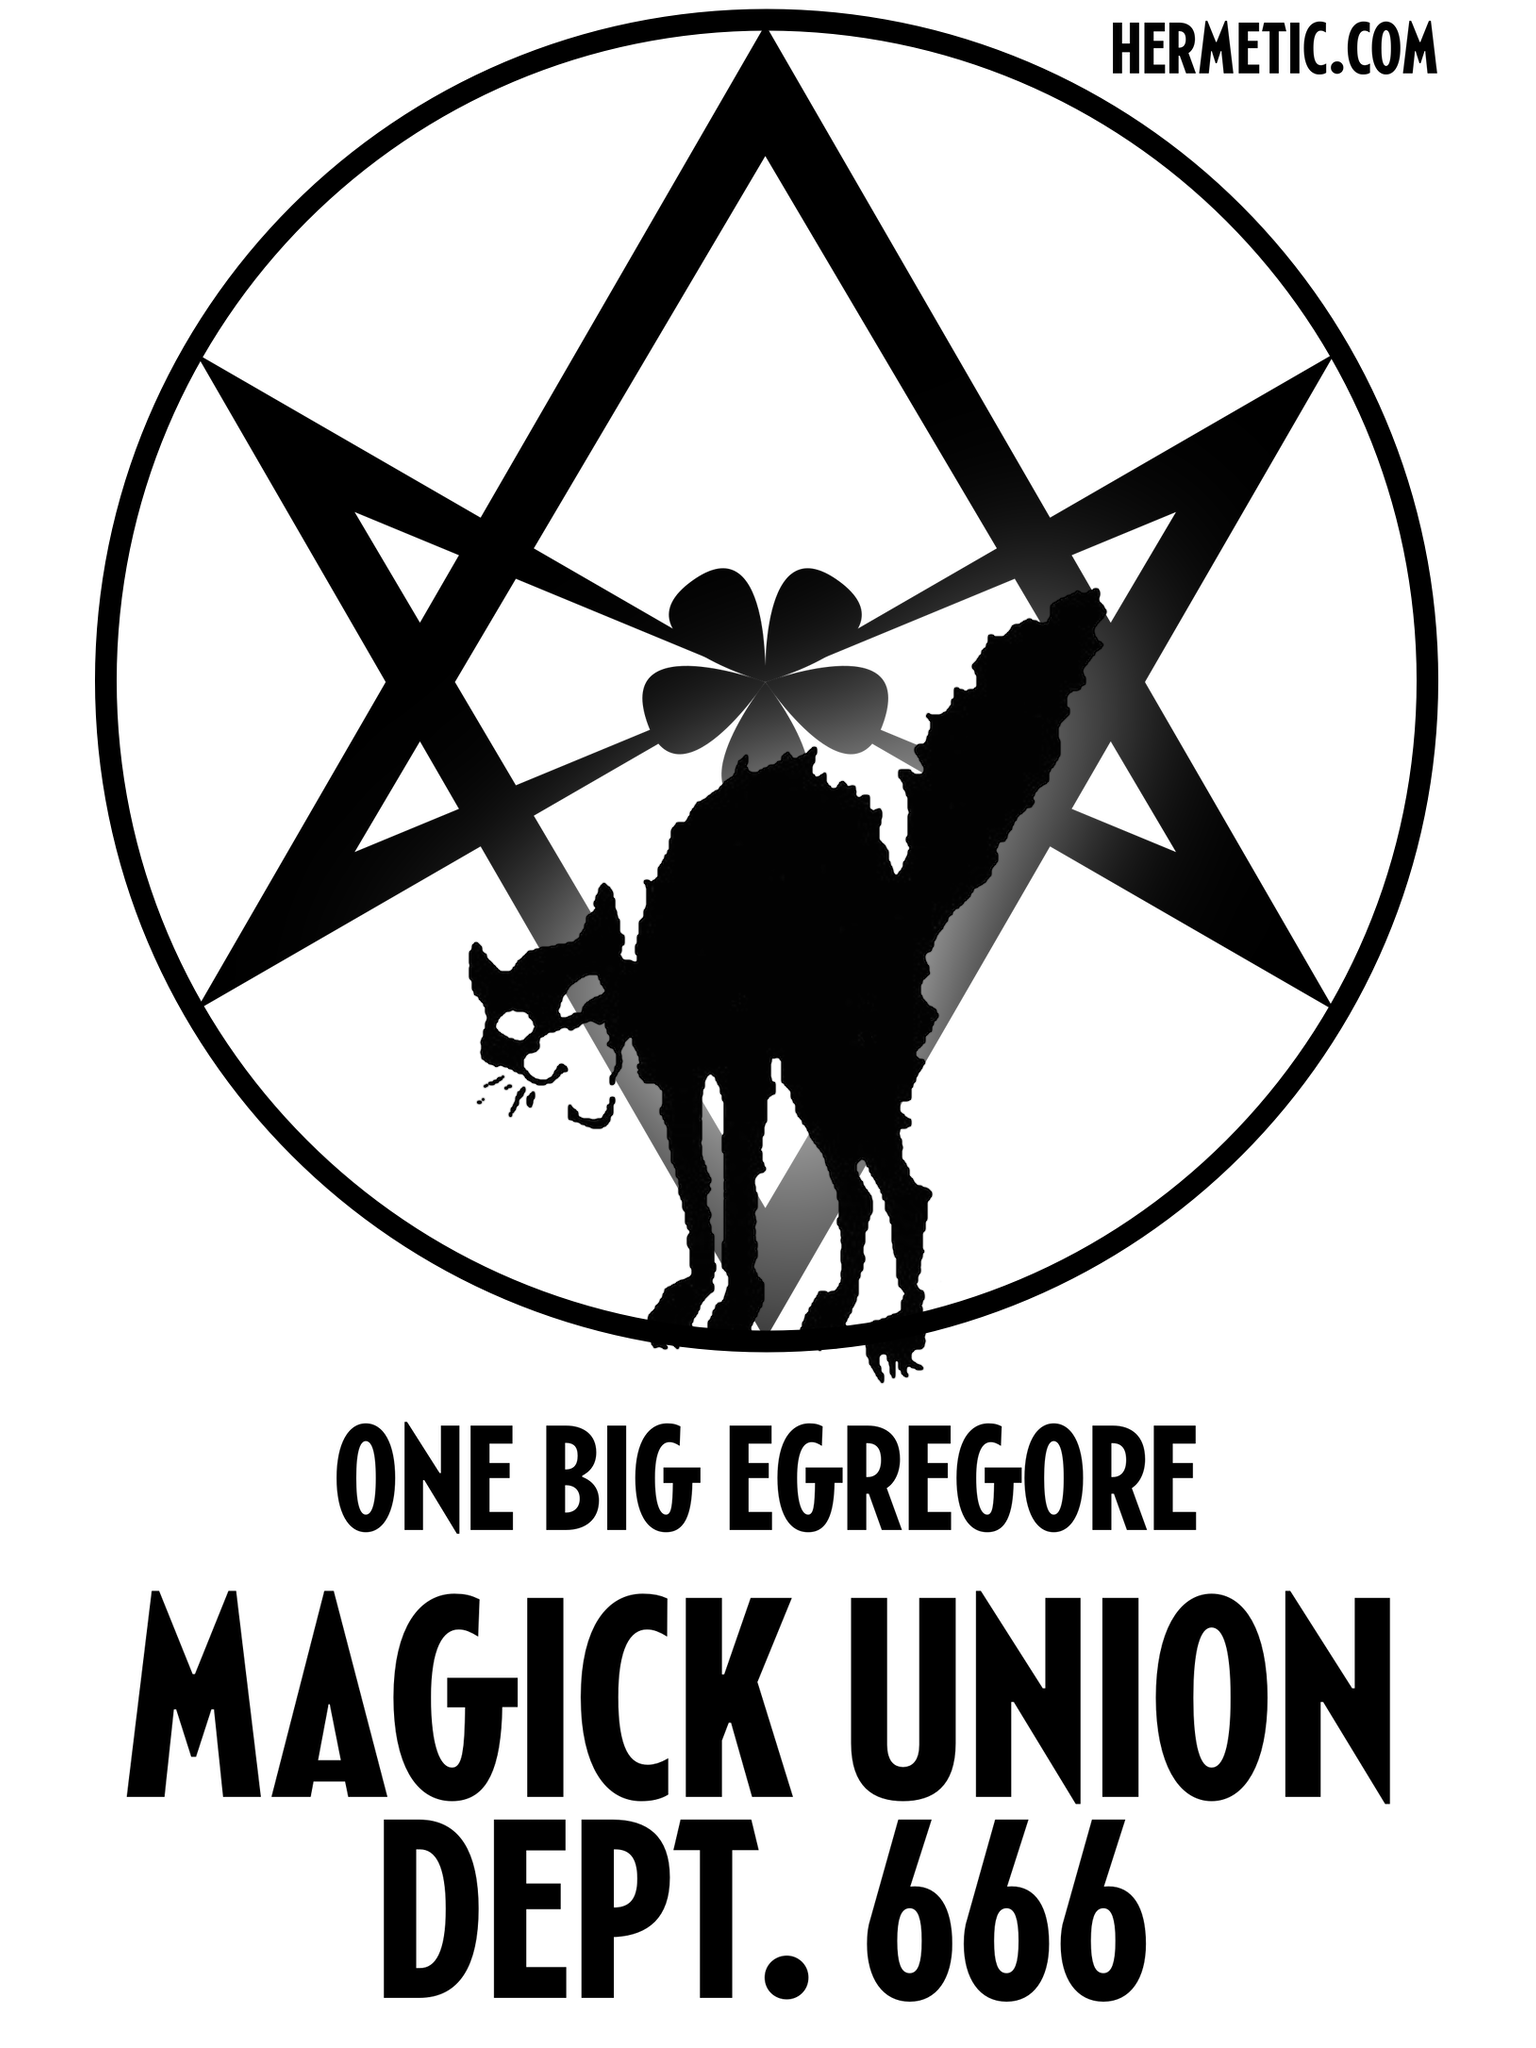 Unicursal Sabo Cat Magick Union Dept 666 One Big Egregore Propaganda Poster from Hermetic Library Office of the Ministry of Information